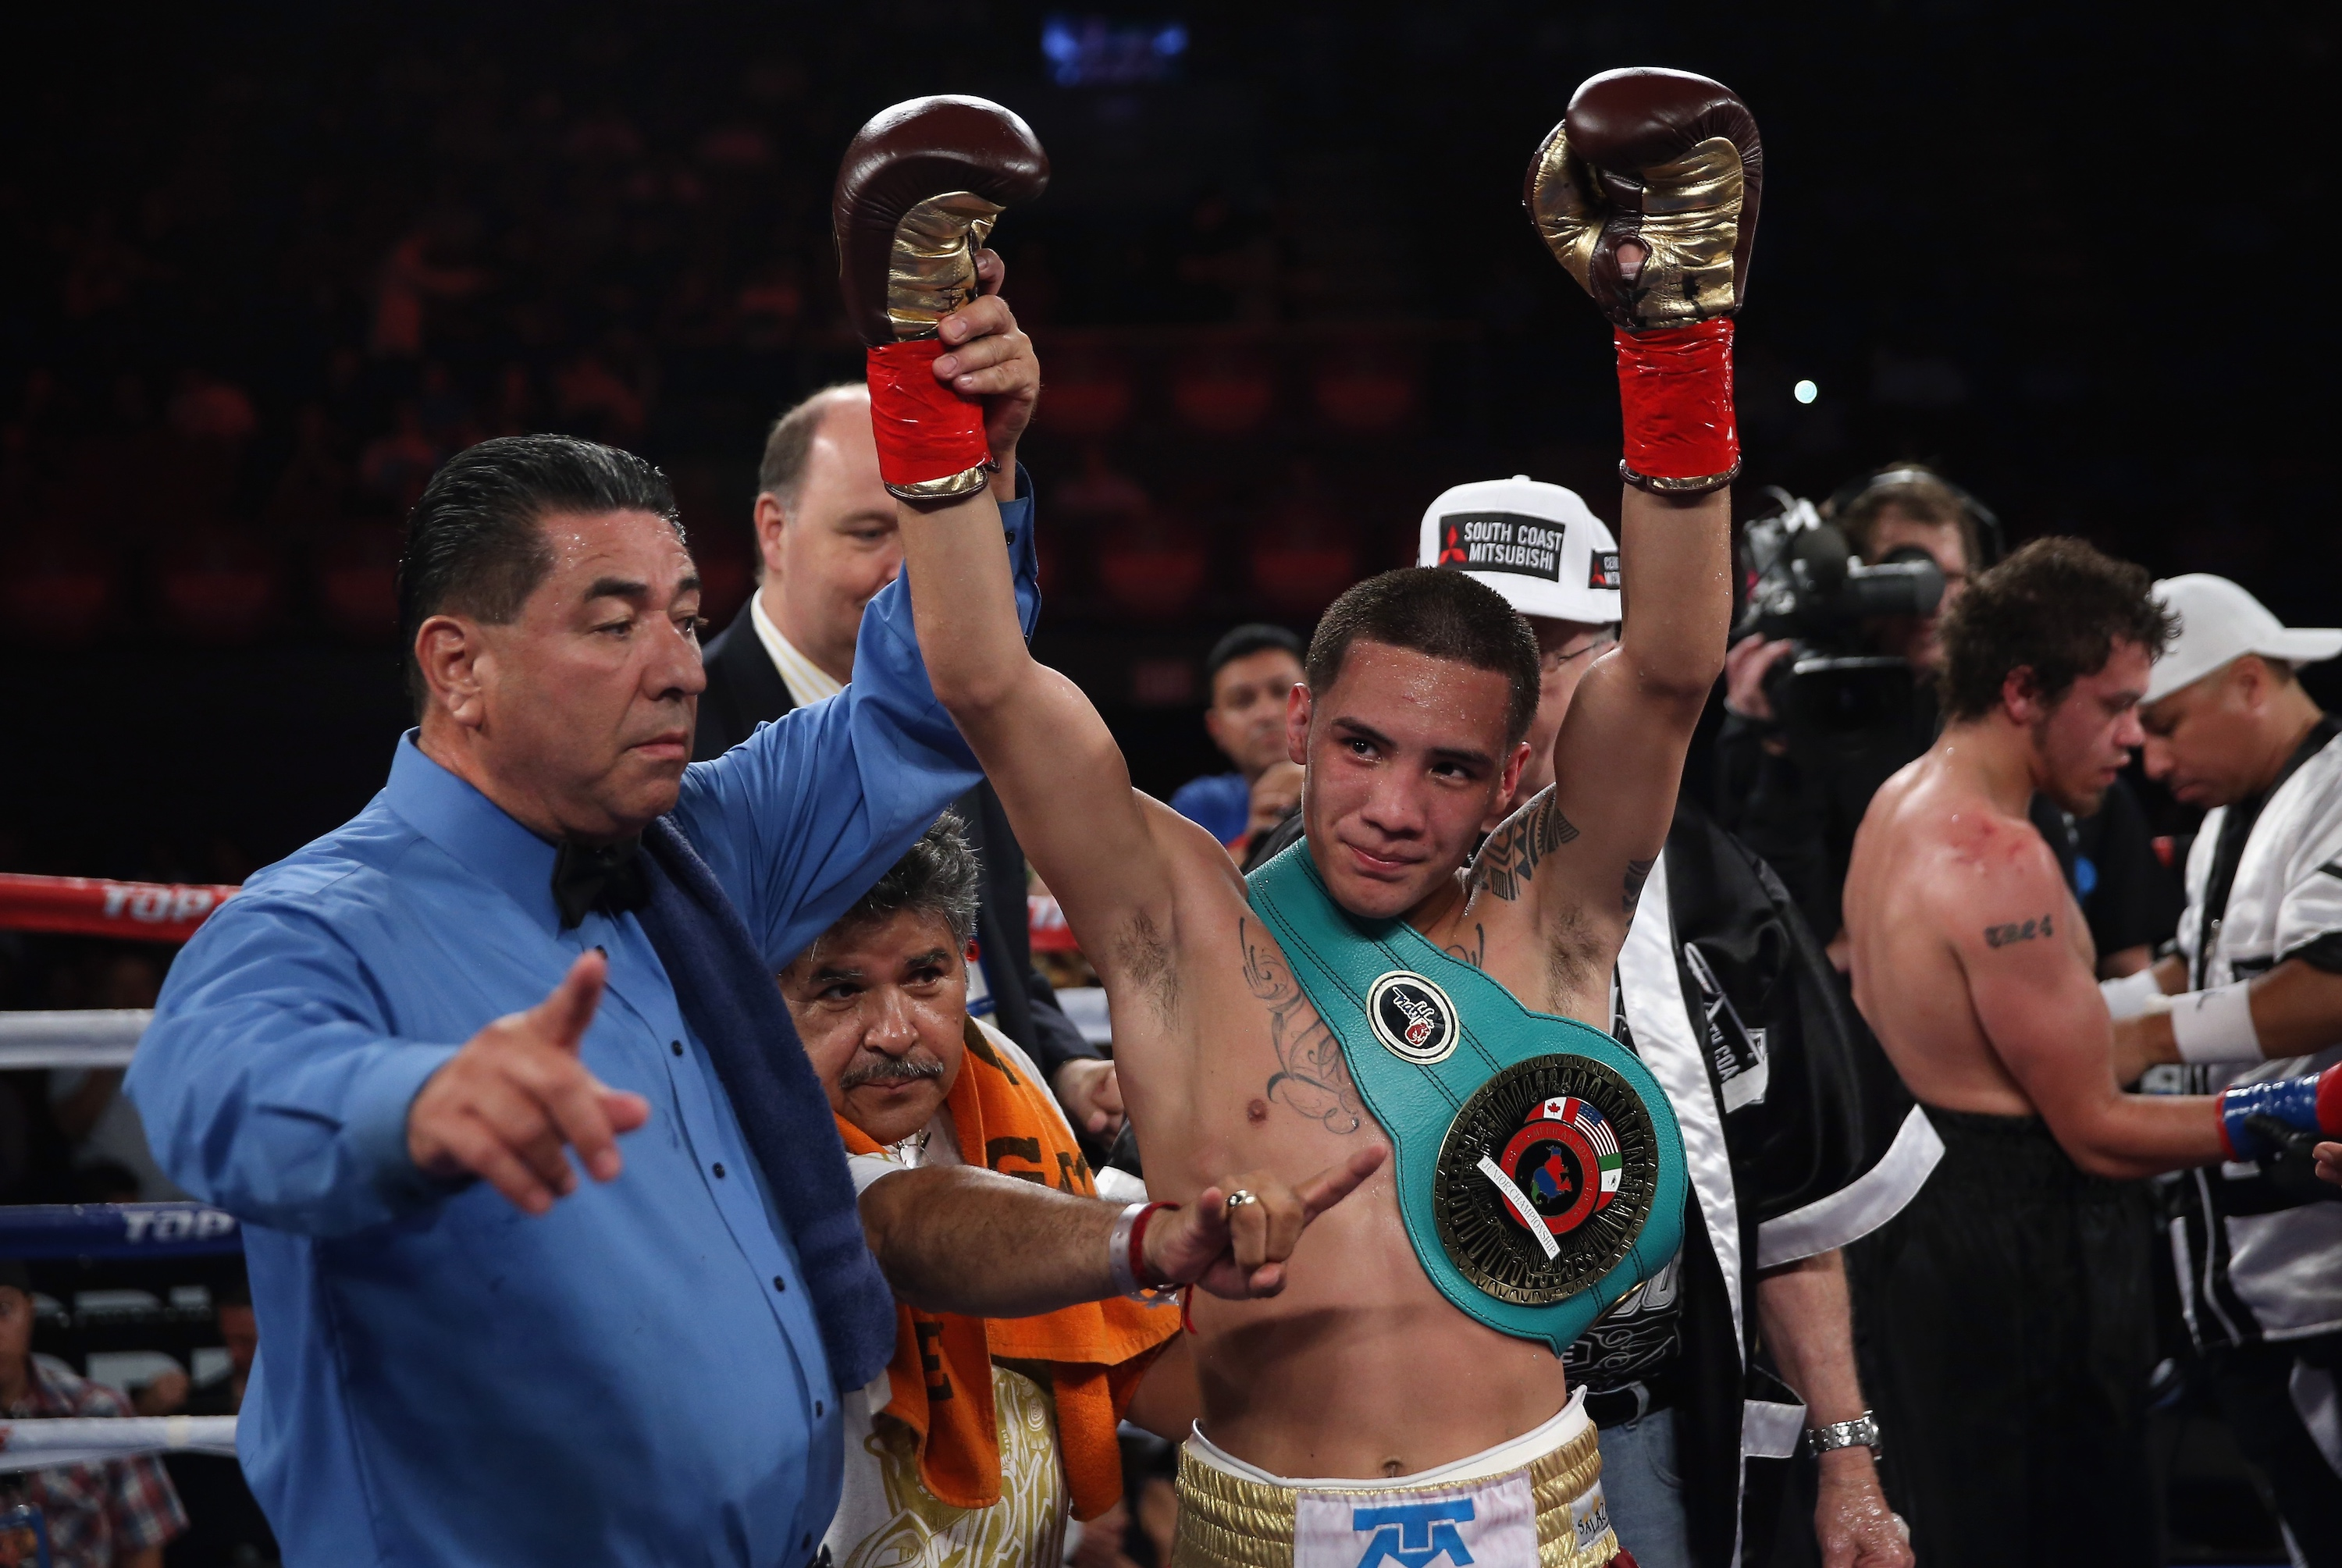 After ICE Tried to Deport His Grandfather, Boxing Champ Óscar Valdez Took a Stand Against Trump